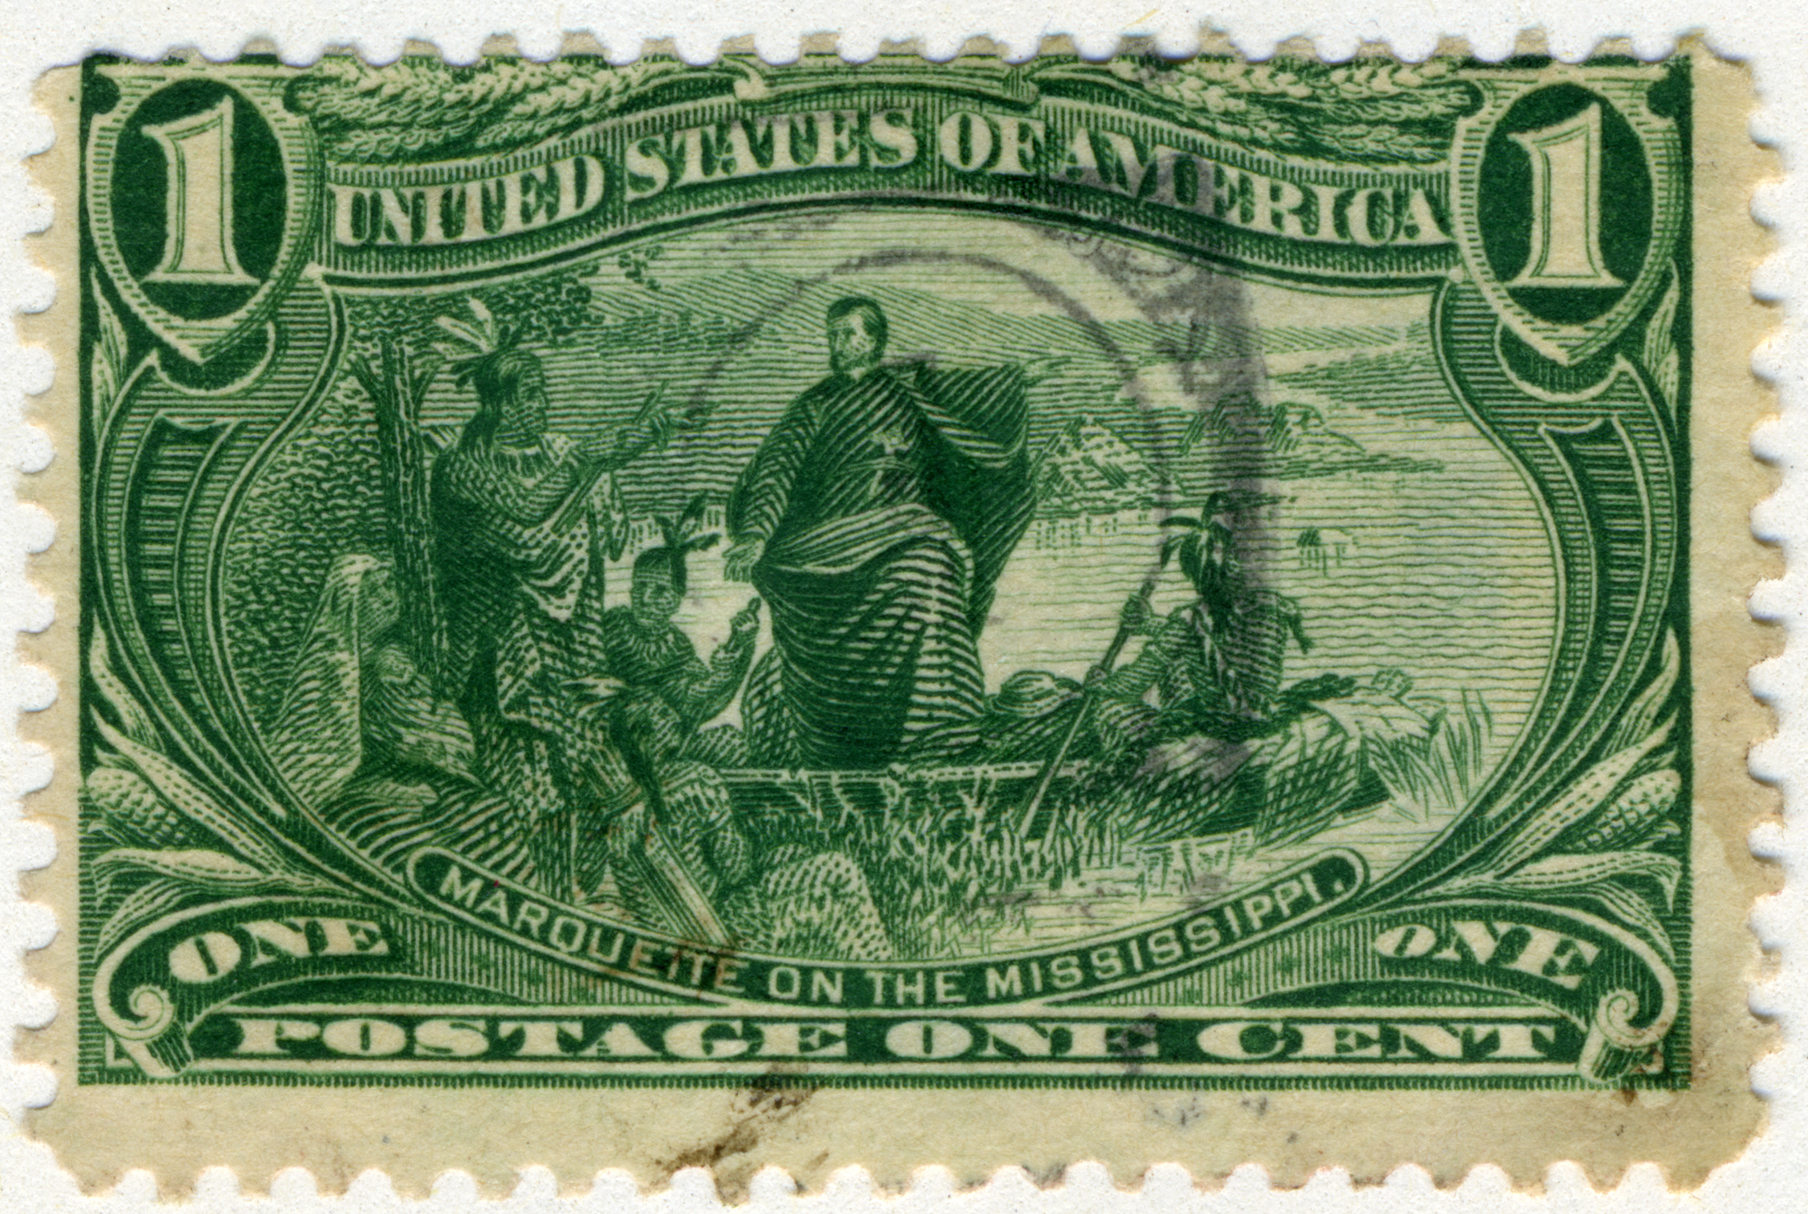 File:US stamp 1898 1c Marquette on the Mississippi.jpg - Wikimedia ...